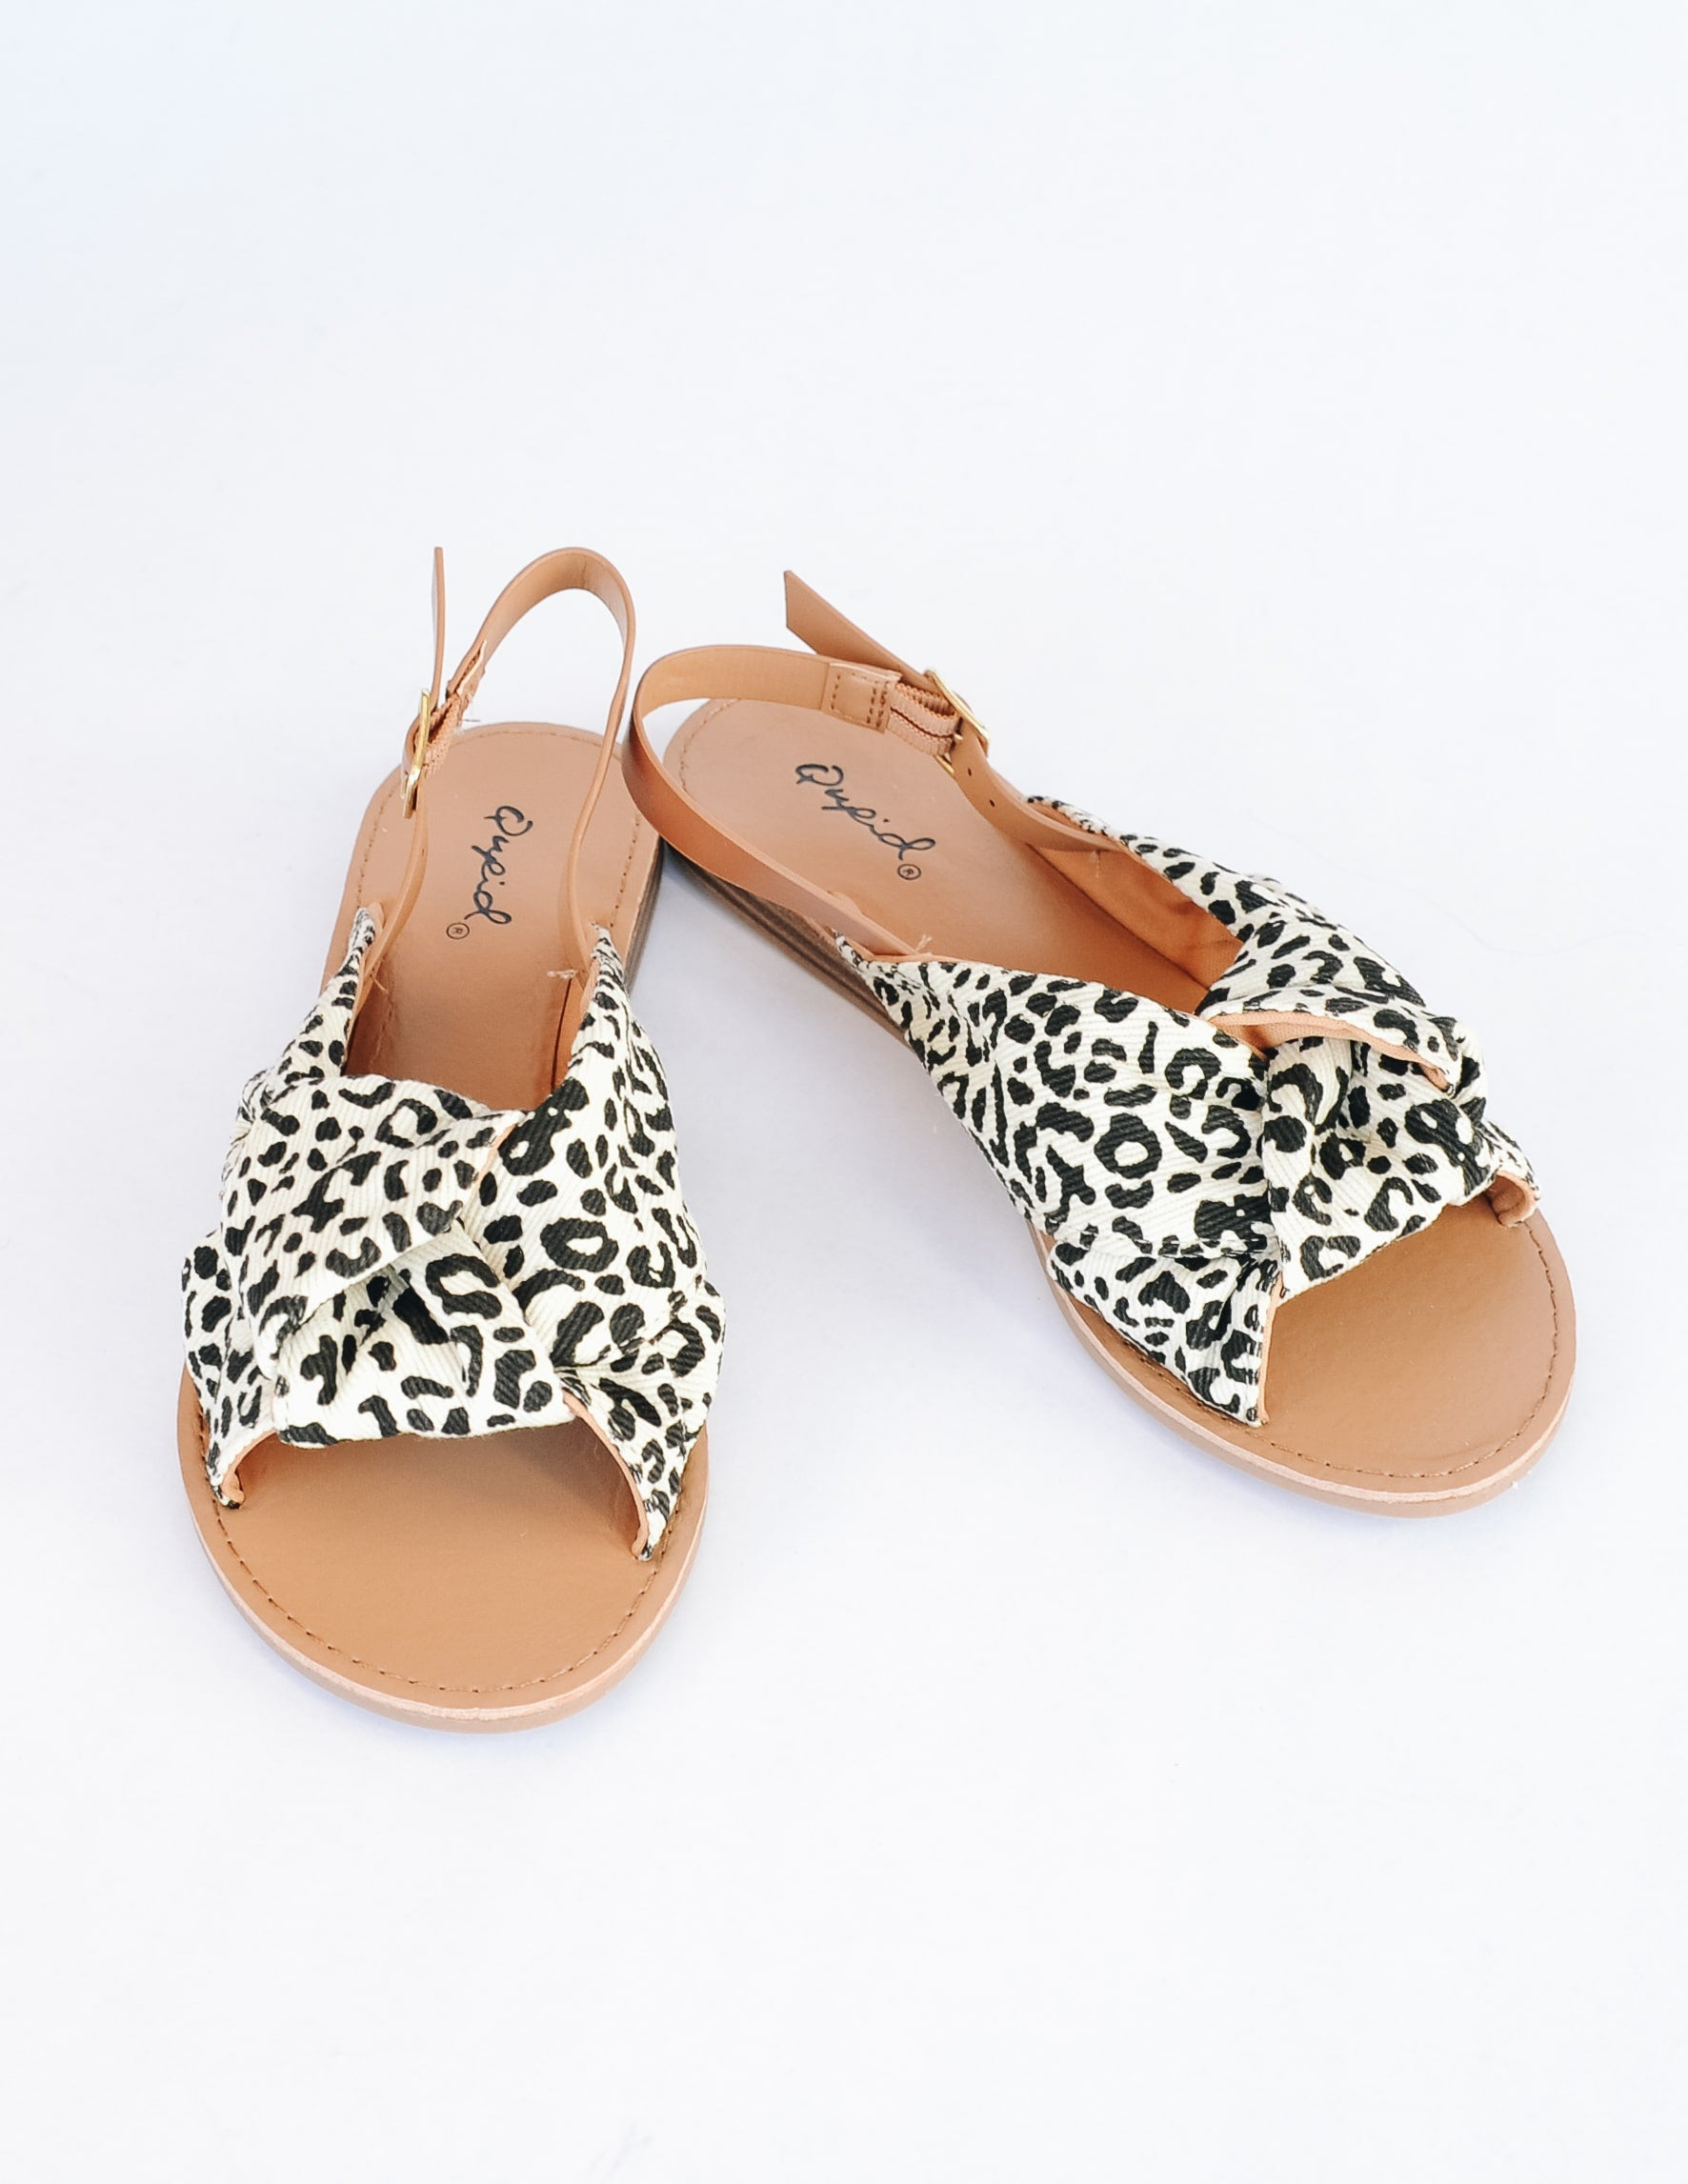 Leopard run wild sandals with tan insole on white background - elle bleu